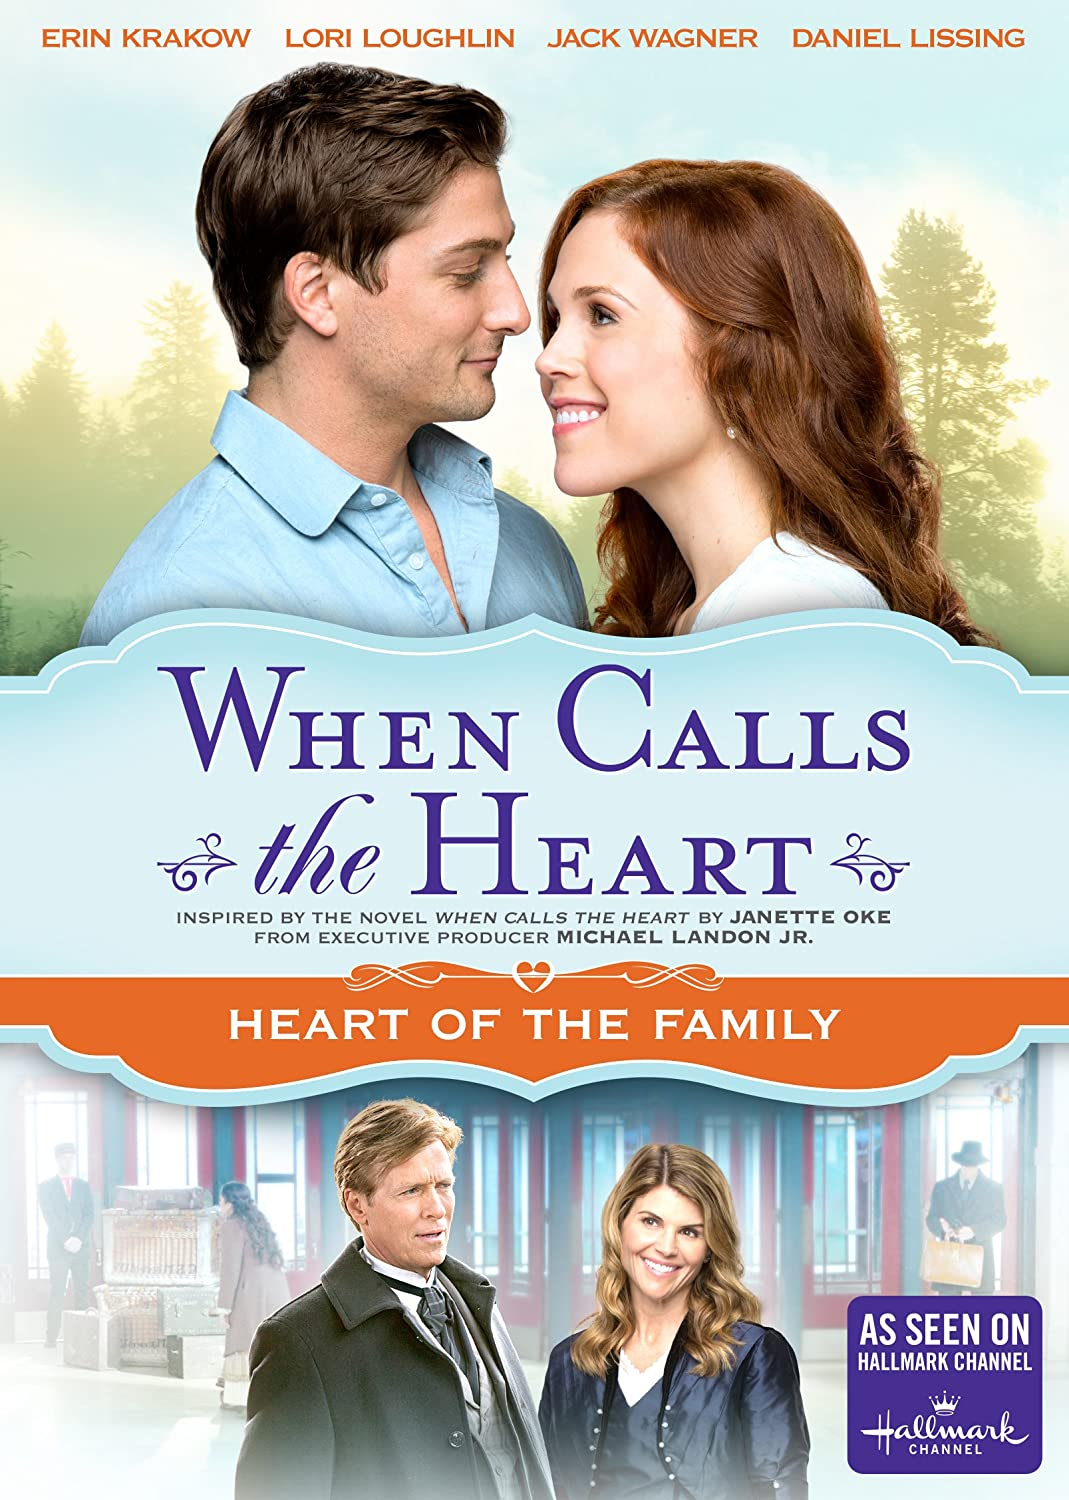 When Calls the Heart: Heart of the Family – DVD Image